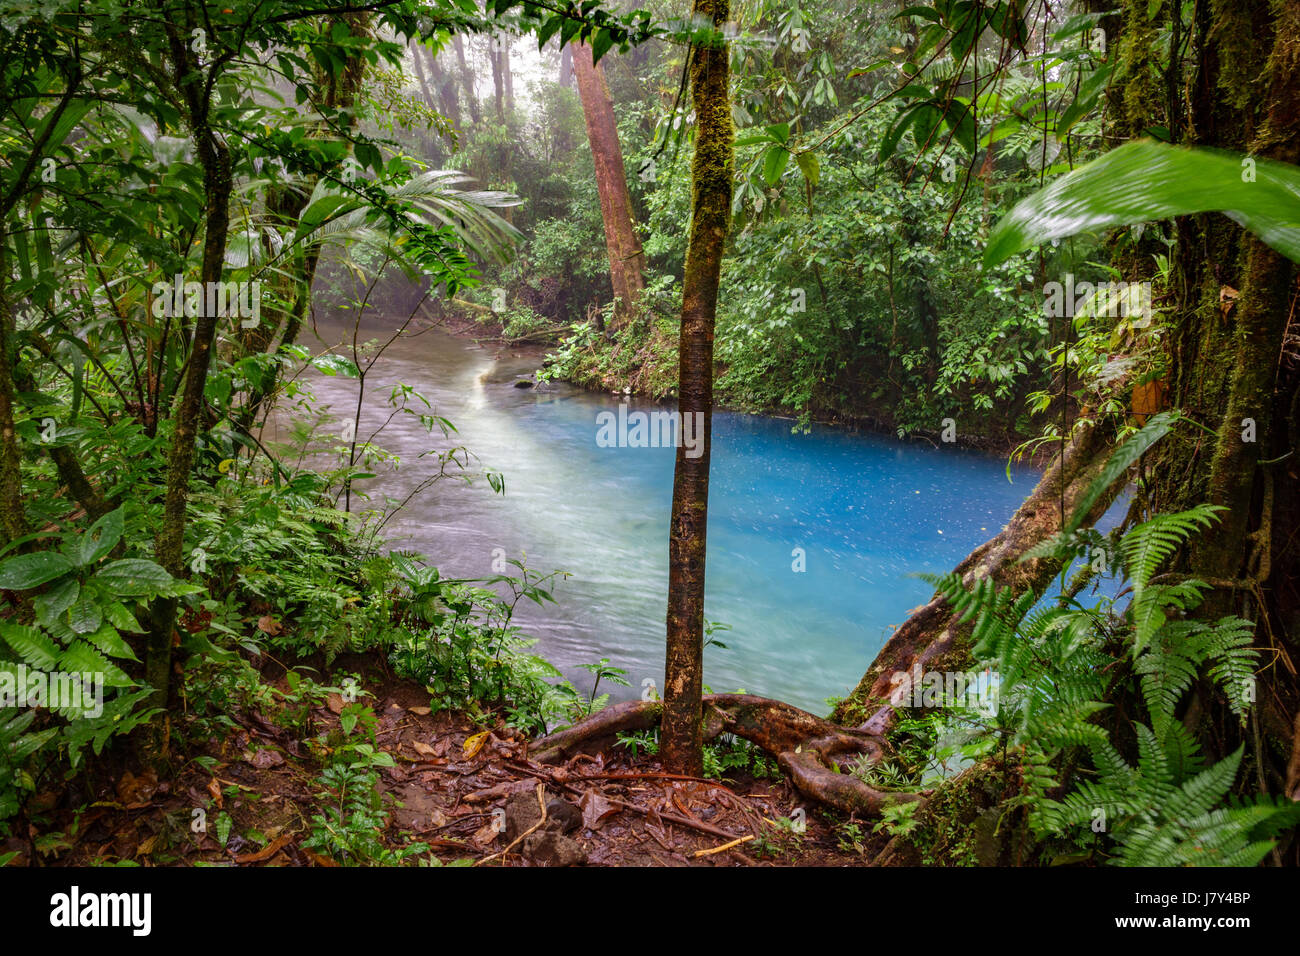 The start of blue river in Costa Rica - Stock Image